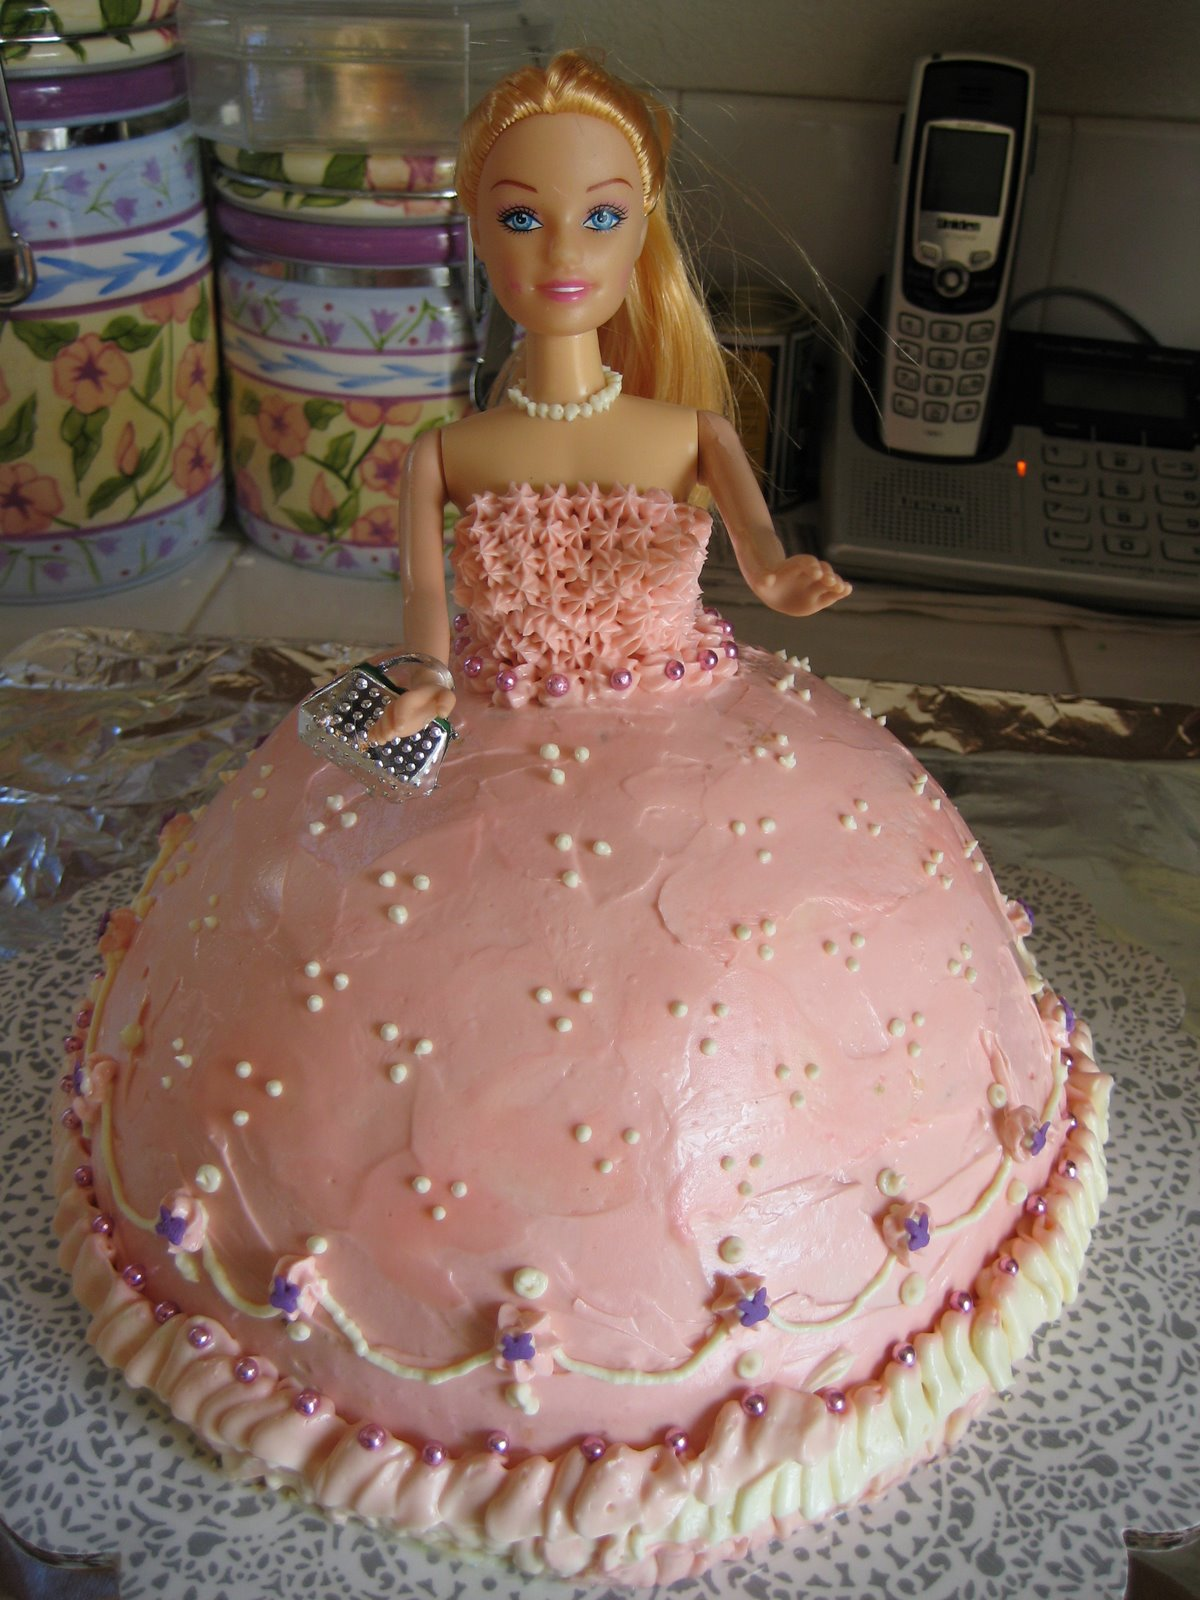 Cake Images Barbie : Coolest Cake Ideas: Barbie cakes